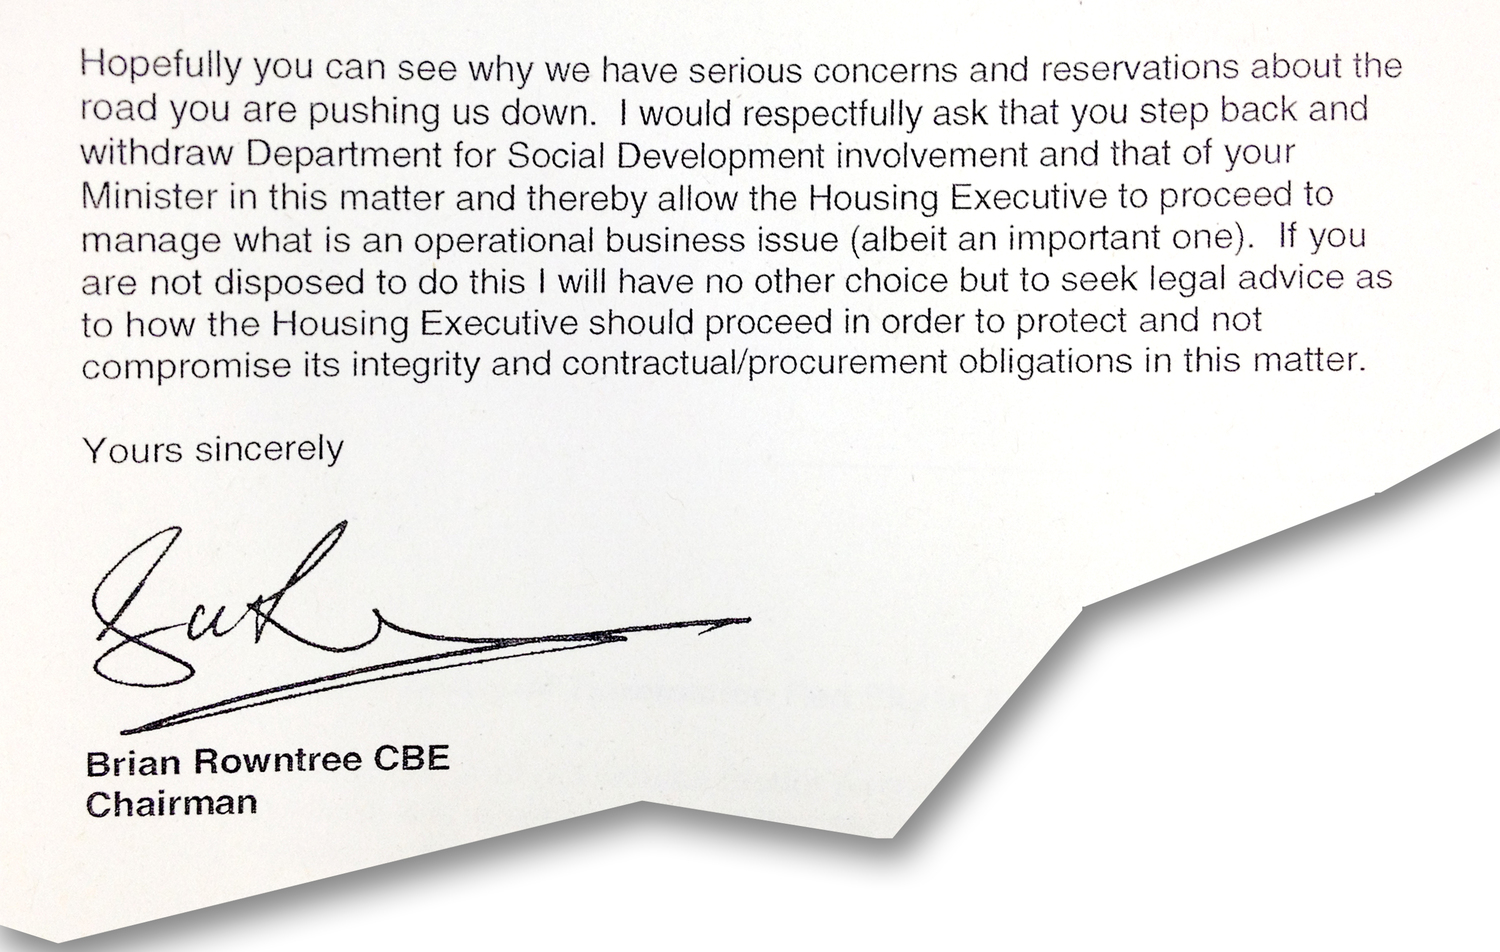 Extract from NIHE chairman Brian Rowntree letter to DSD Permanent Secretary Will Haire